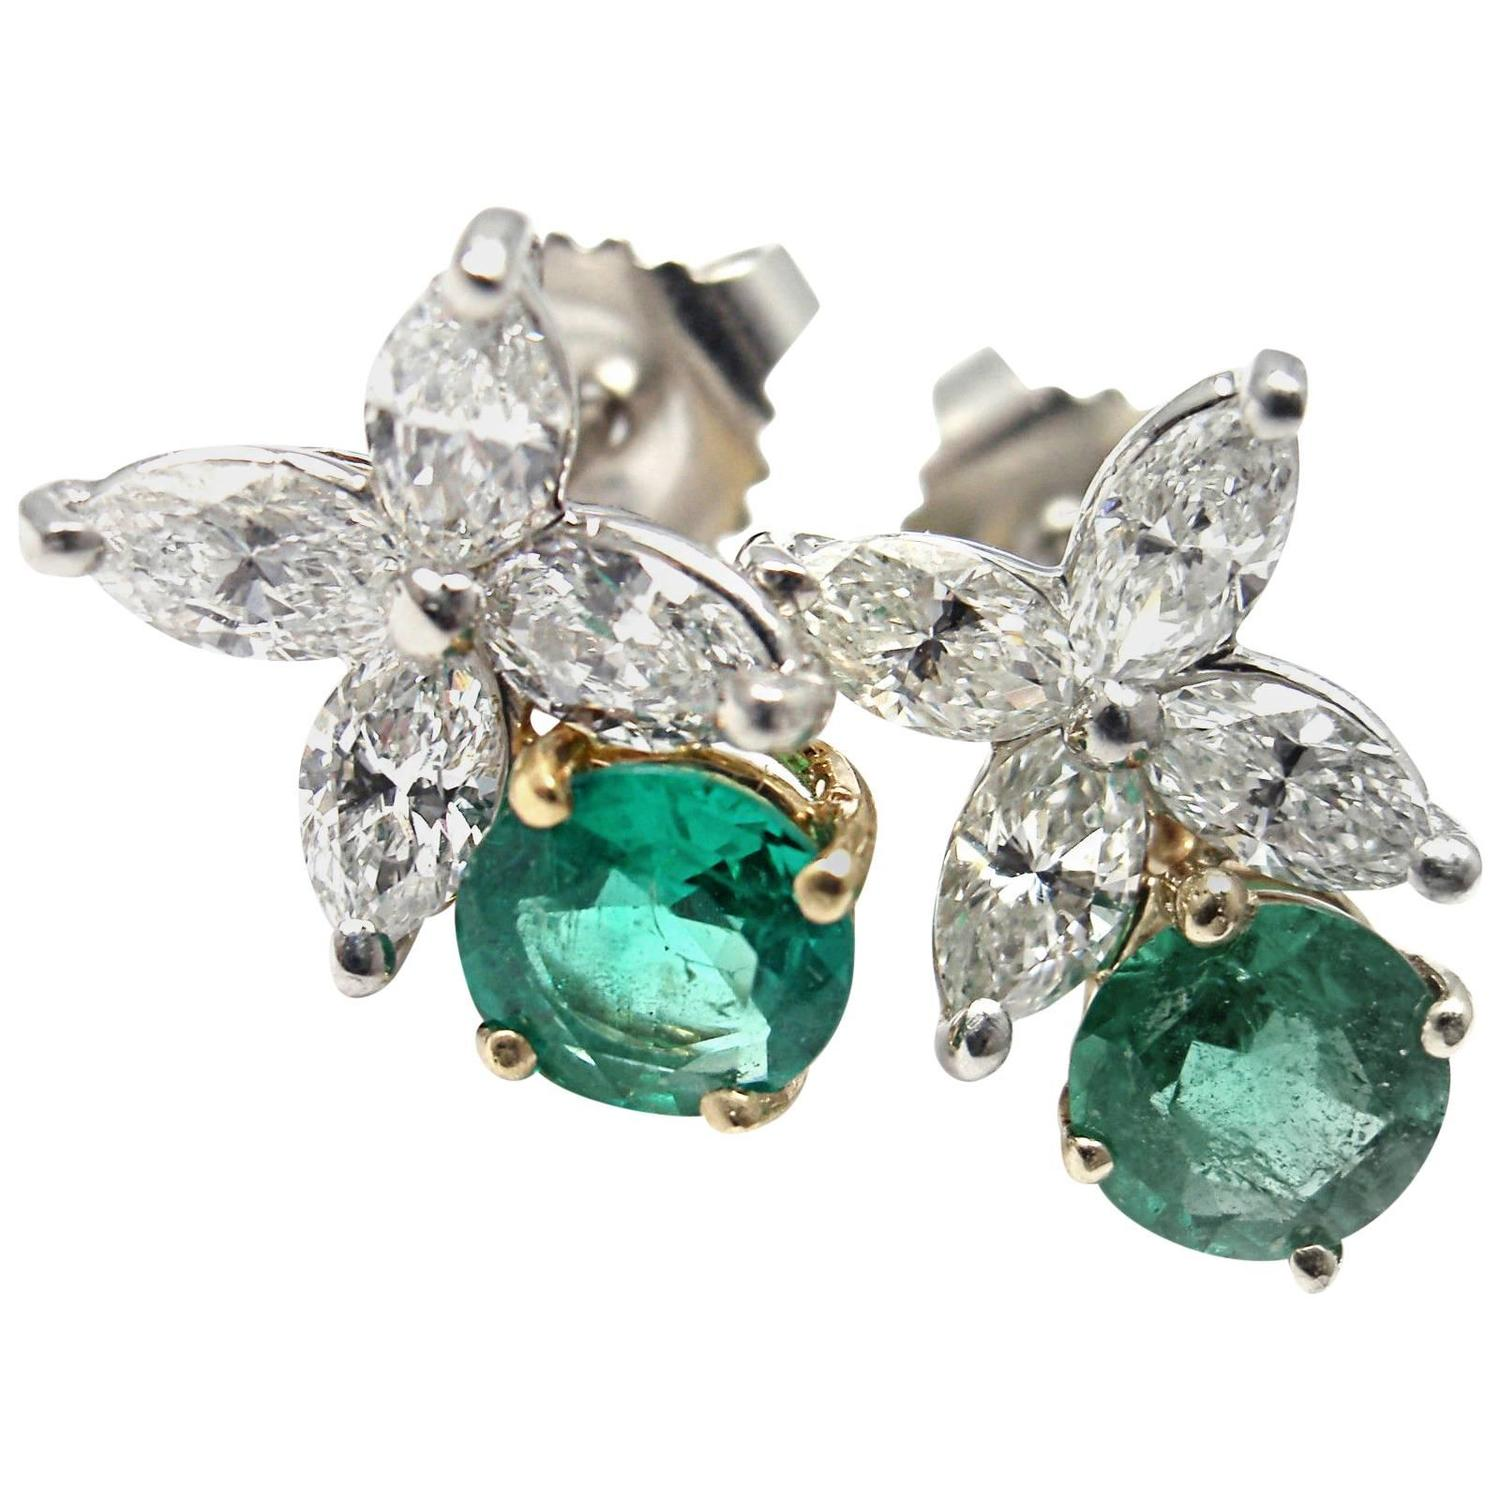 Emerald Cut Diamond Earrings Tiffany